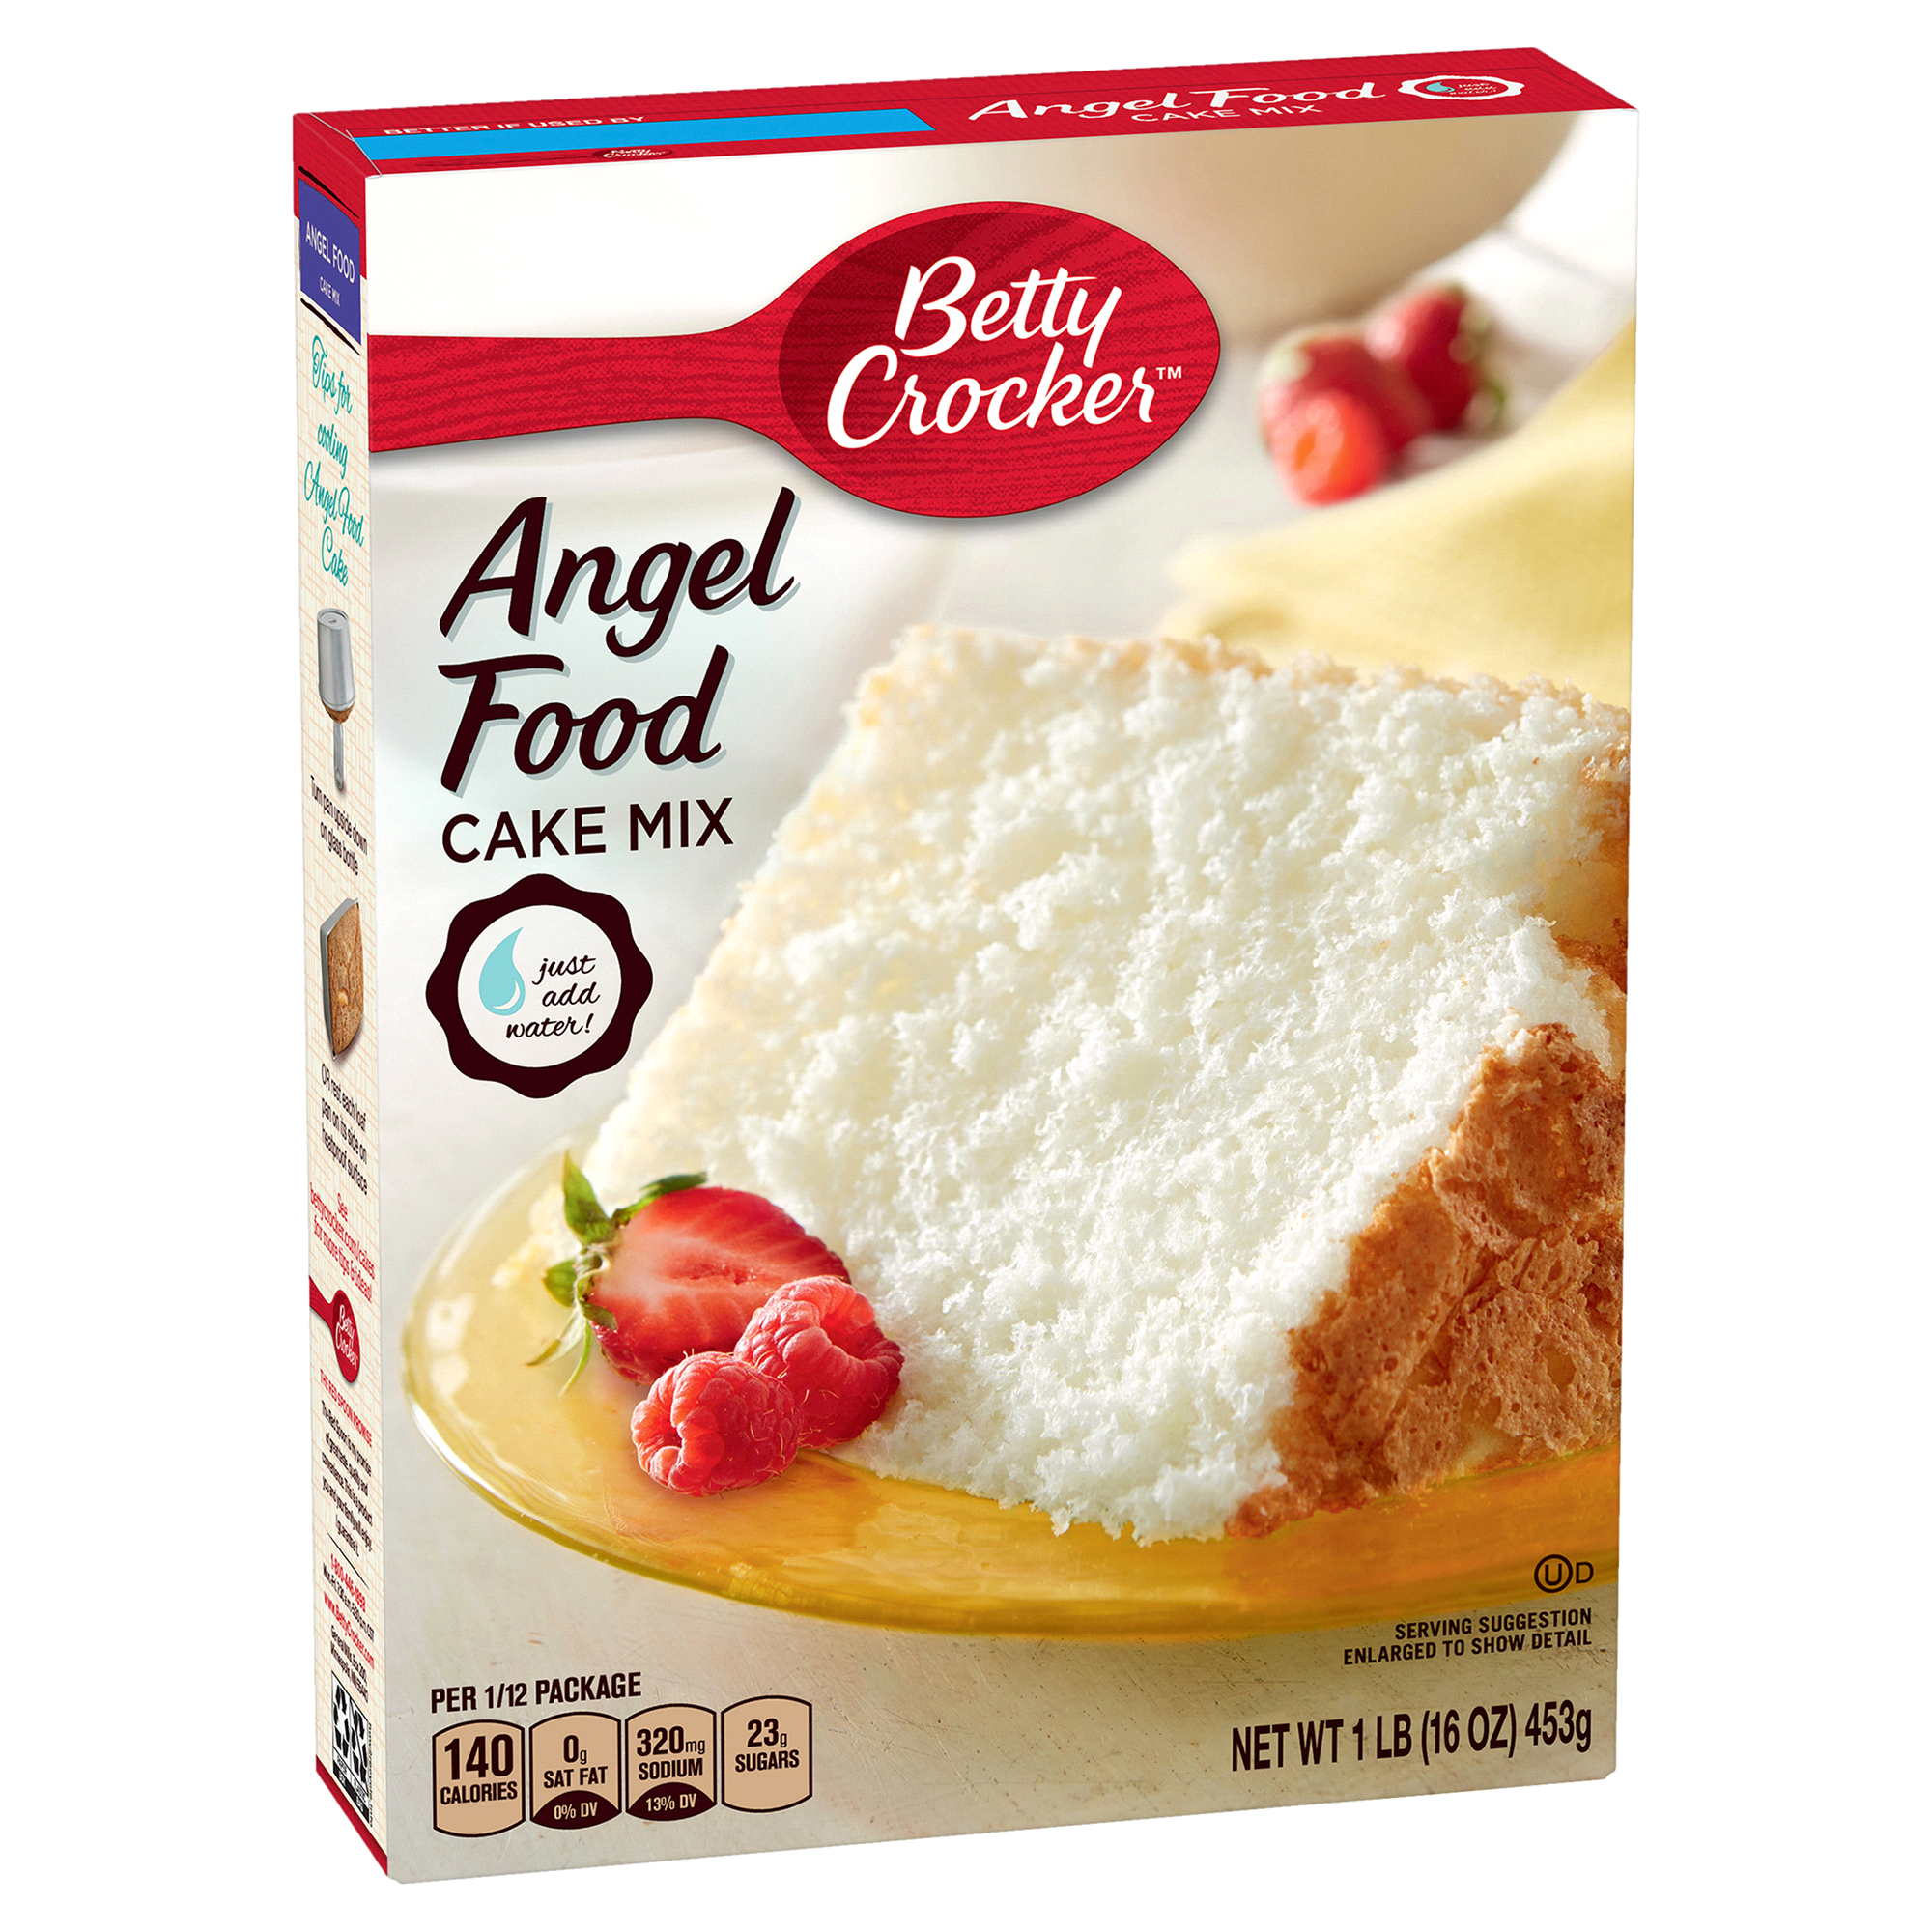 Betty Crocker Angel Food Cake Mix 16 oz Box